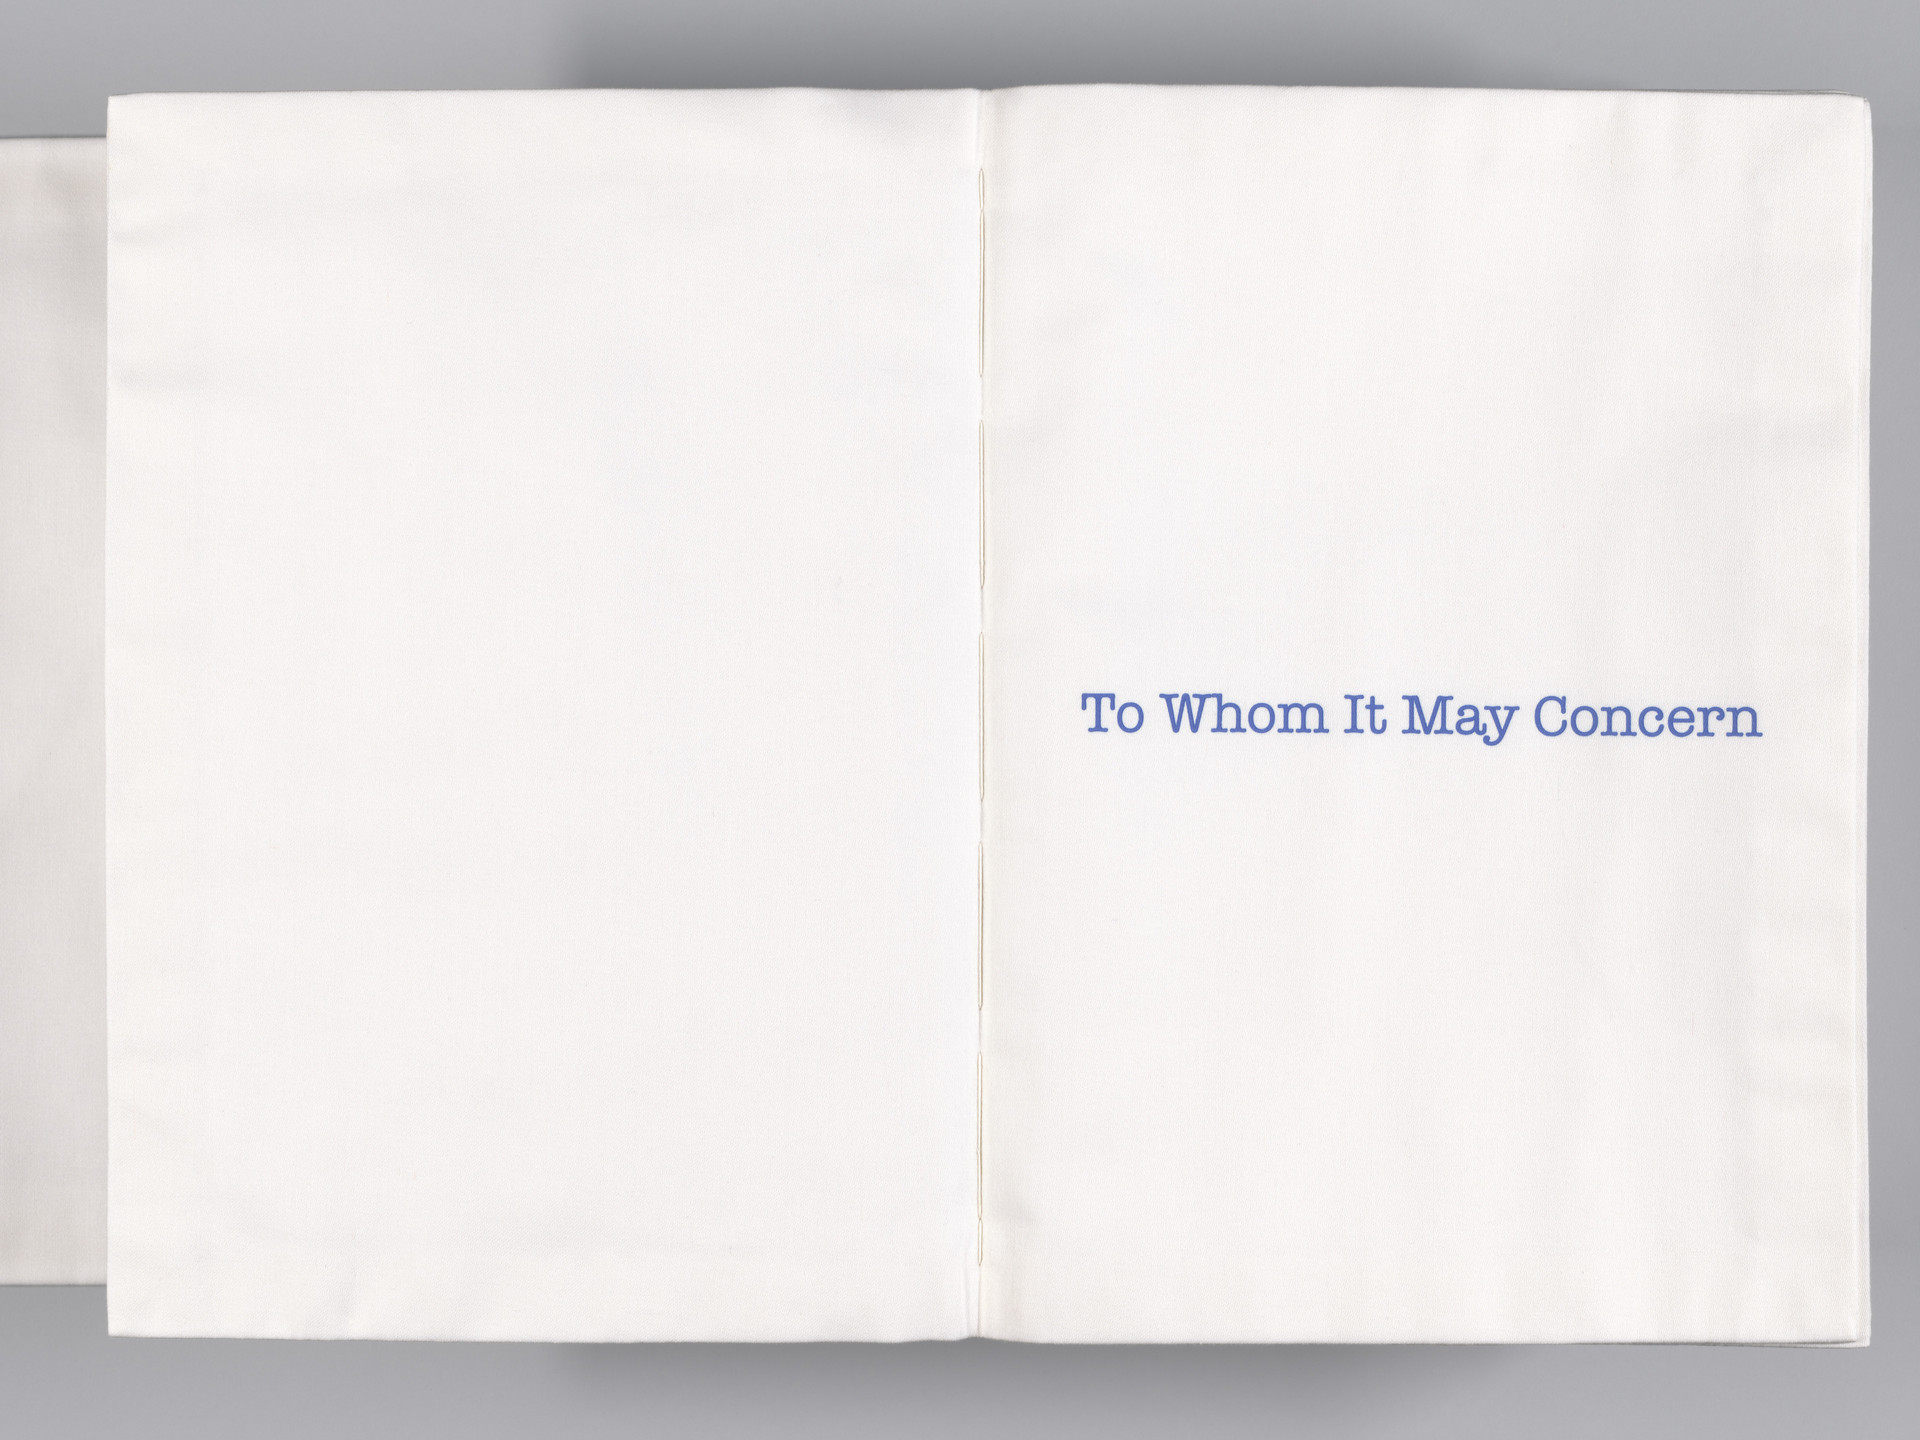 Louise Bourgeois. To Whom It May Concern. 2009-2010